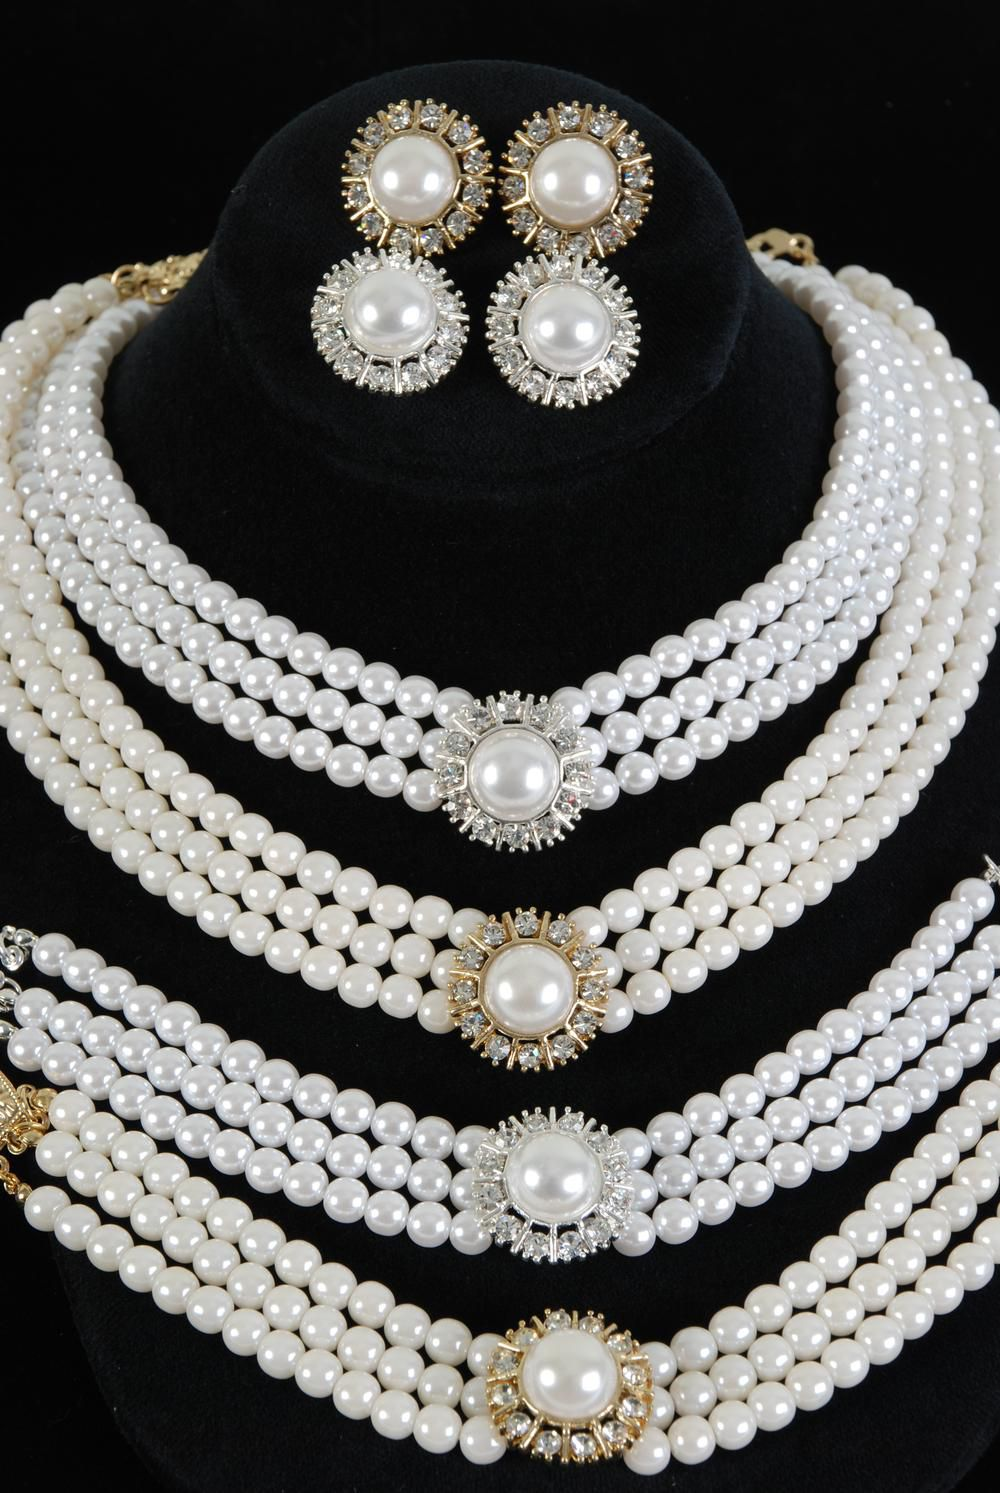 3pcs Necklace Set Round 3 String Pearl W Crystals Po